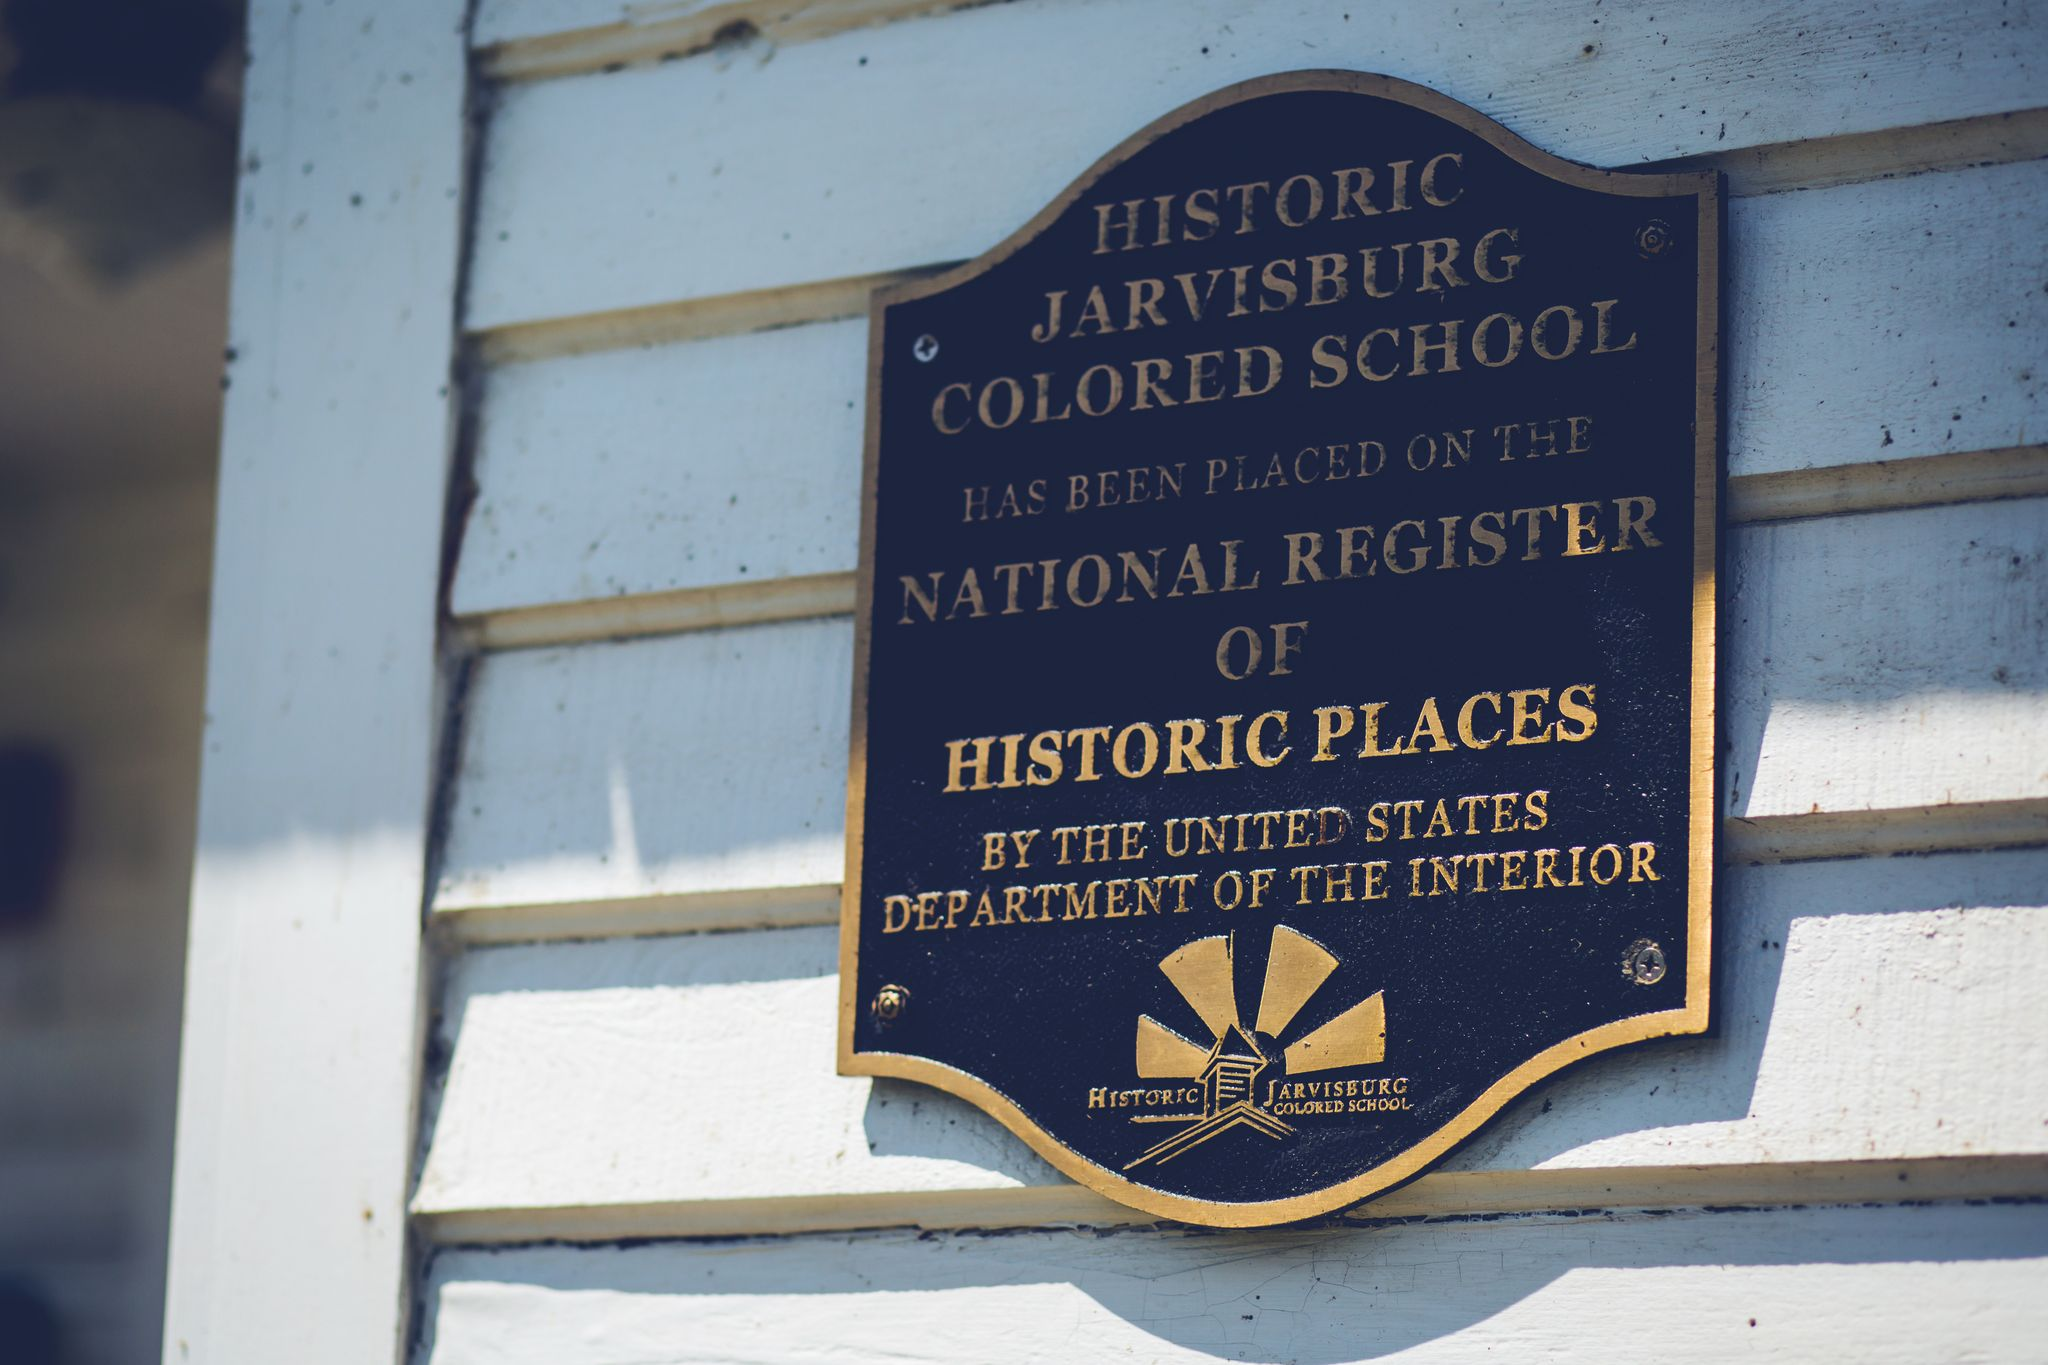 Historic Jarvisburg Colored School is National registered historic places